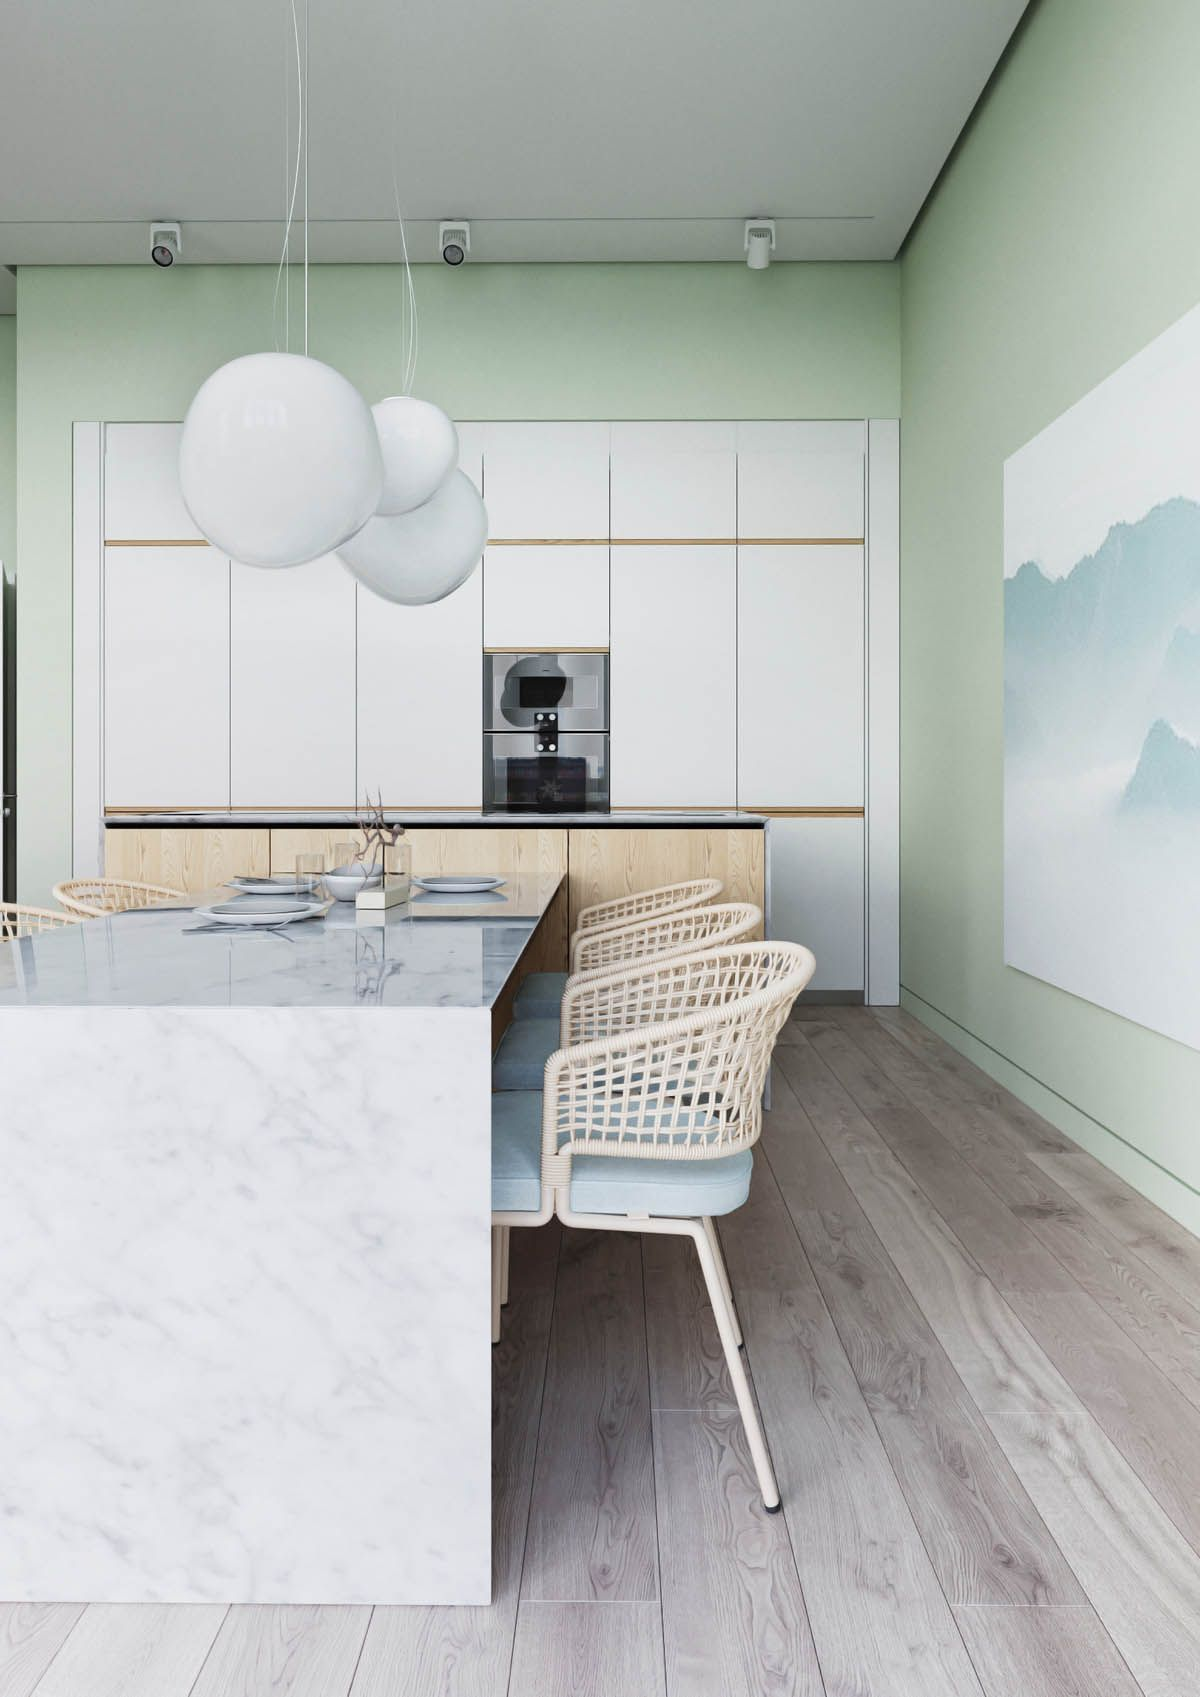 marble island, white kitchen and pale mint green